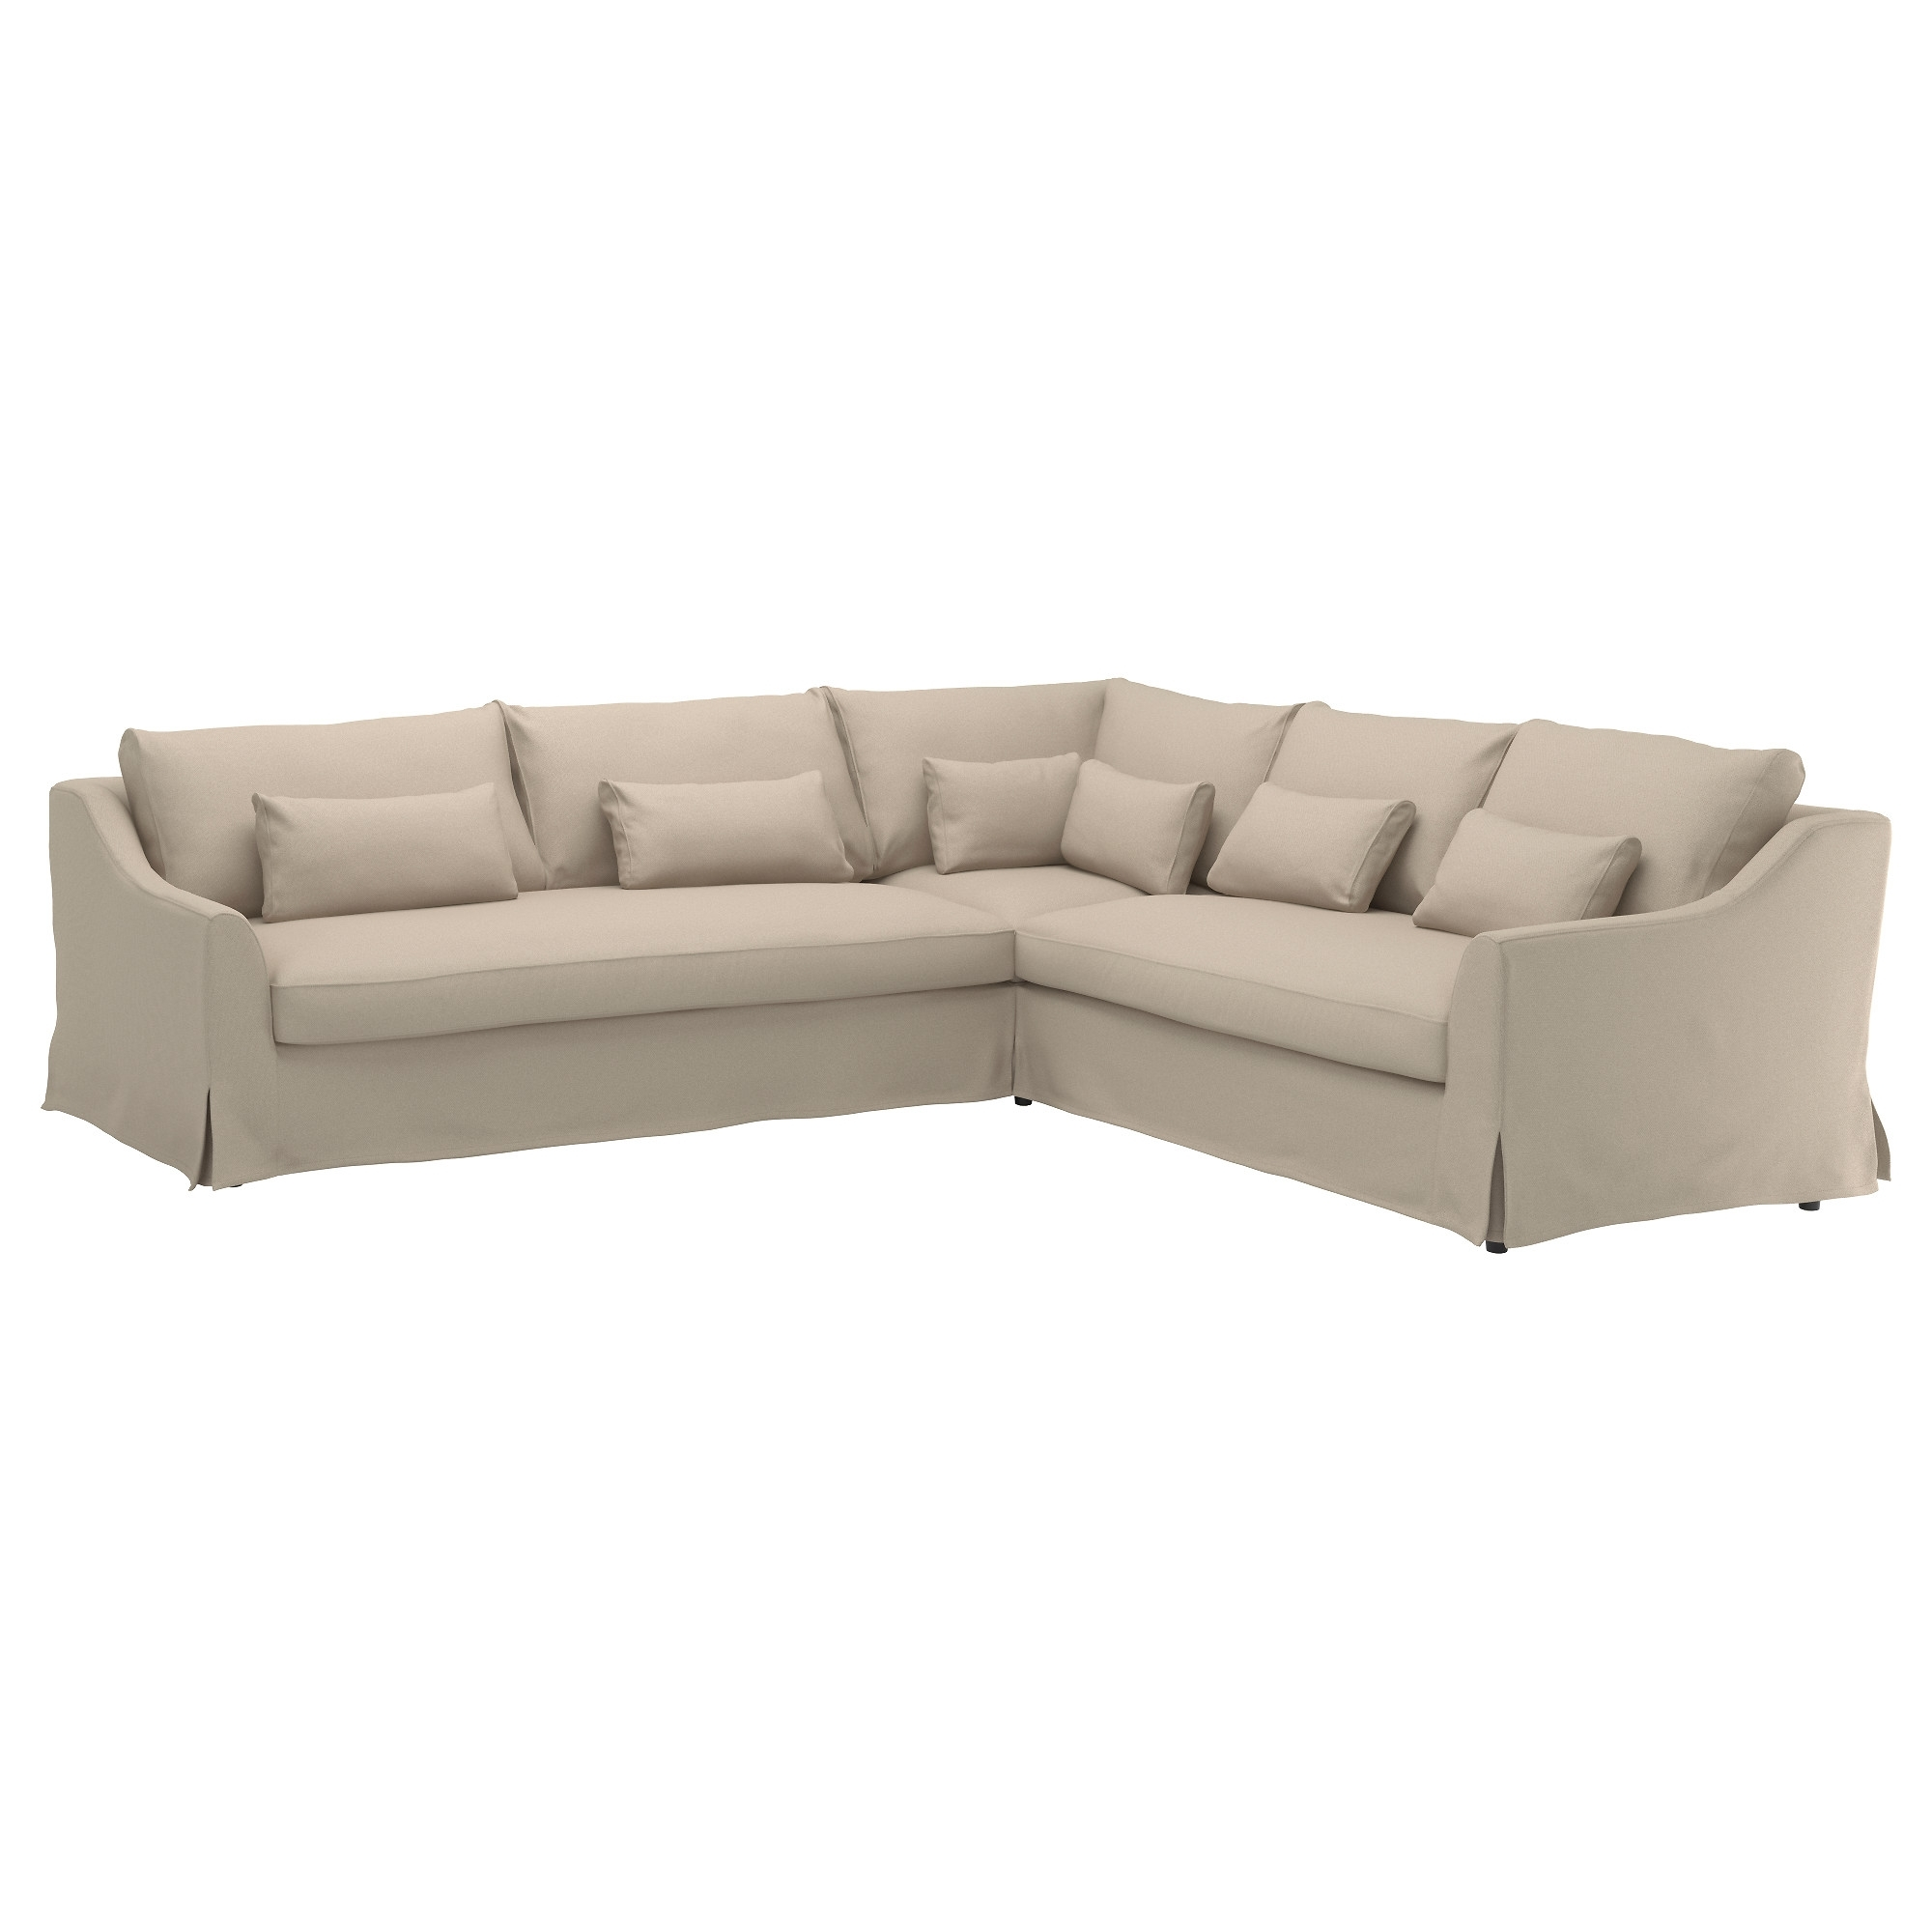 Las Vegas Sectional Sofas Throughout Widely Used Färlöv Sectional,5 Seat/sofa Right – Flodafors Beige – Ikea (View 8 of 20)